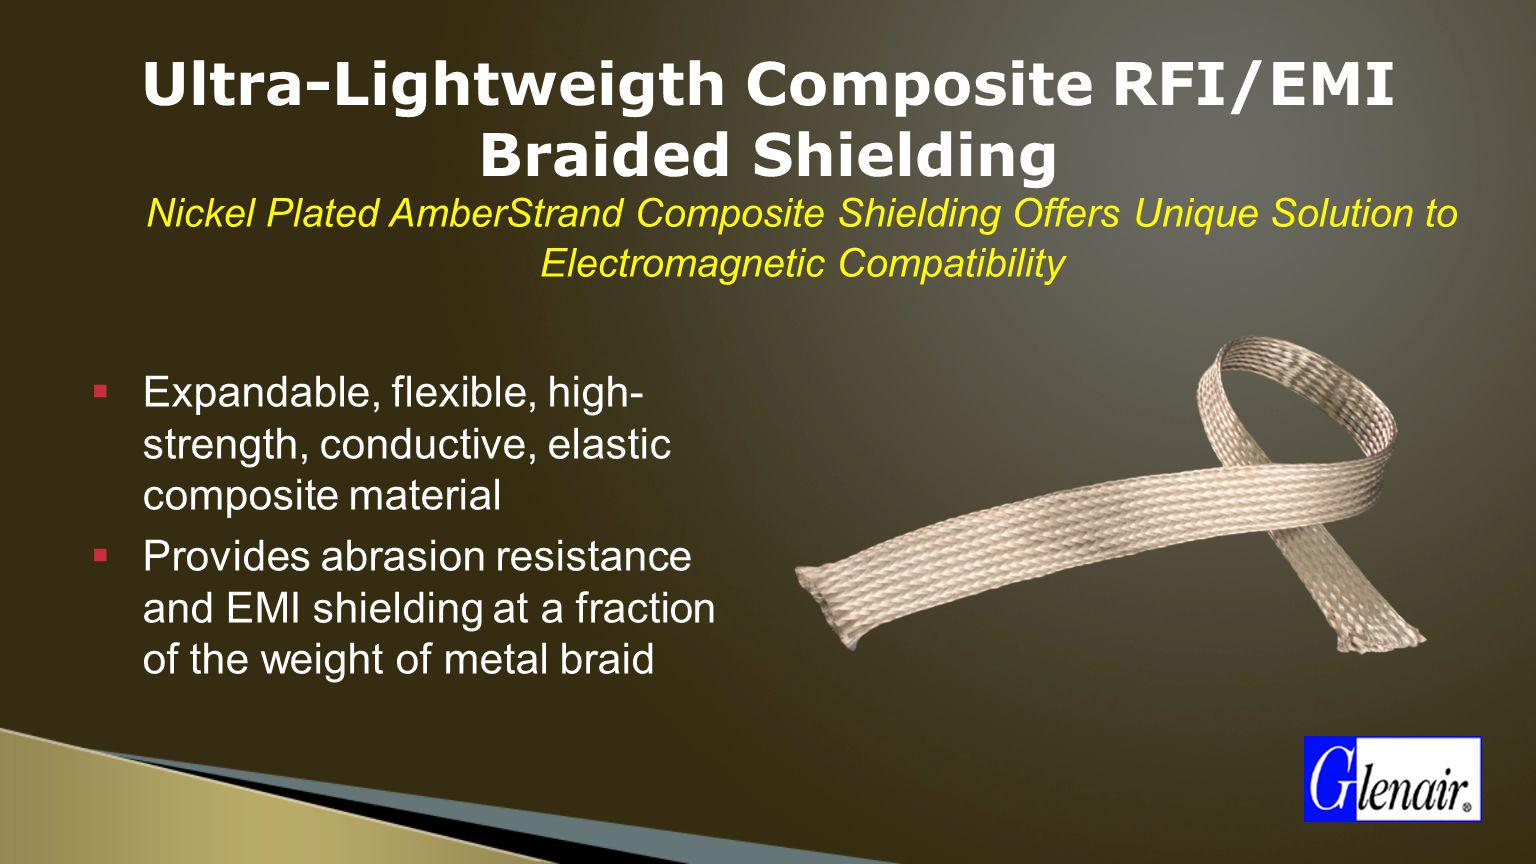 Ultra-Lightweigth Composite RFI/EMI Braided Shielding